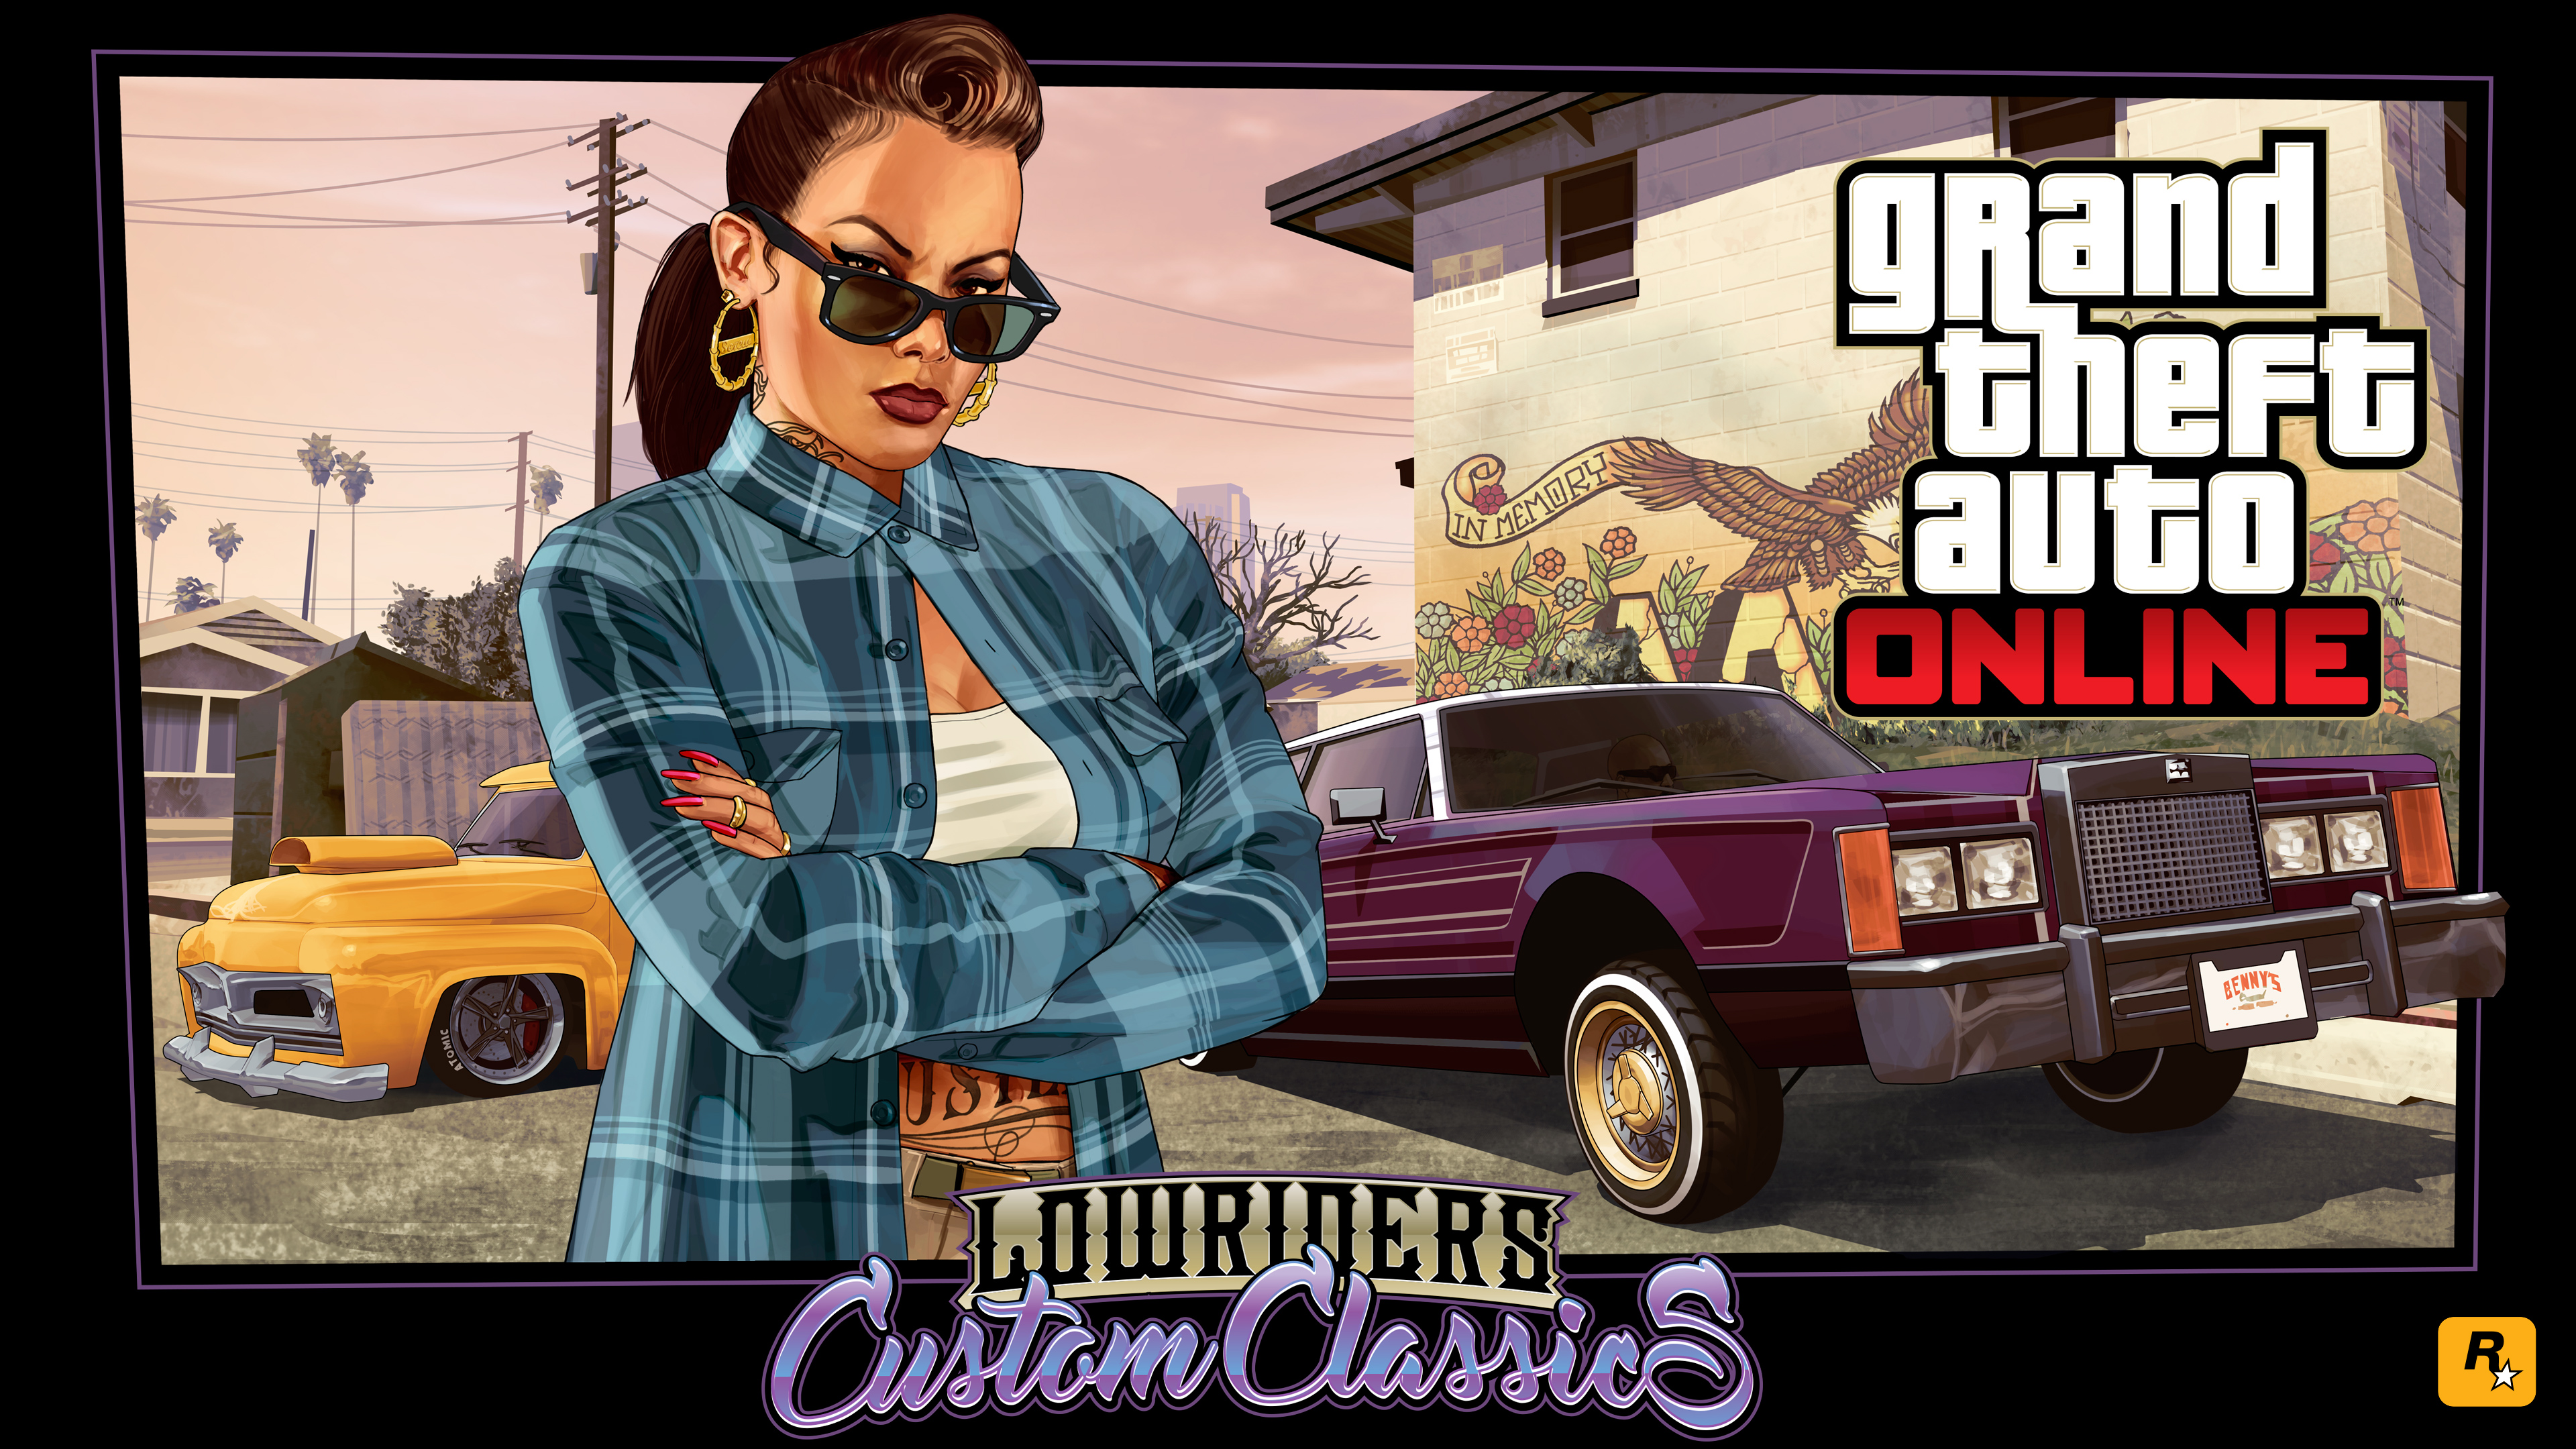 real grand theft auto online game